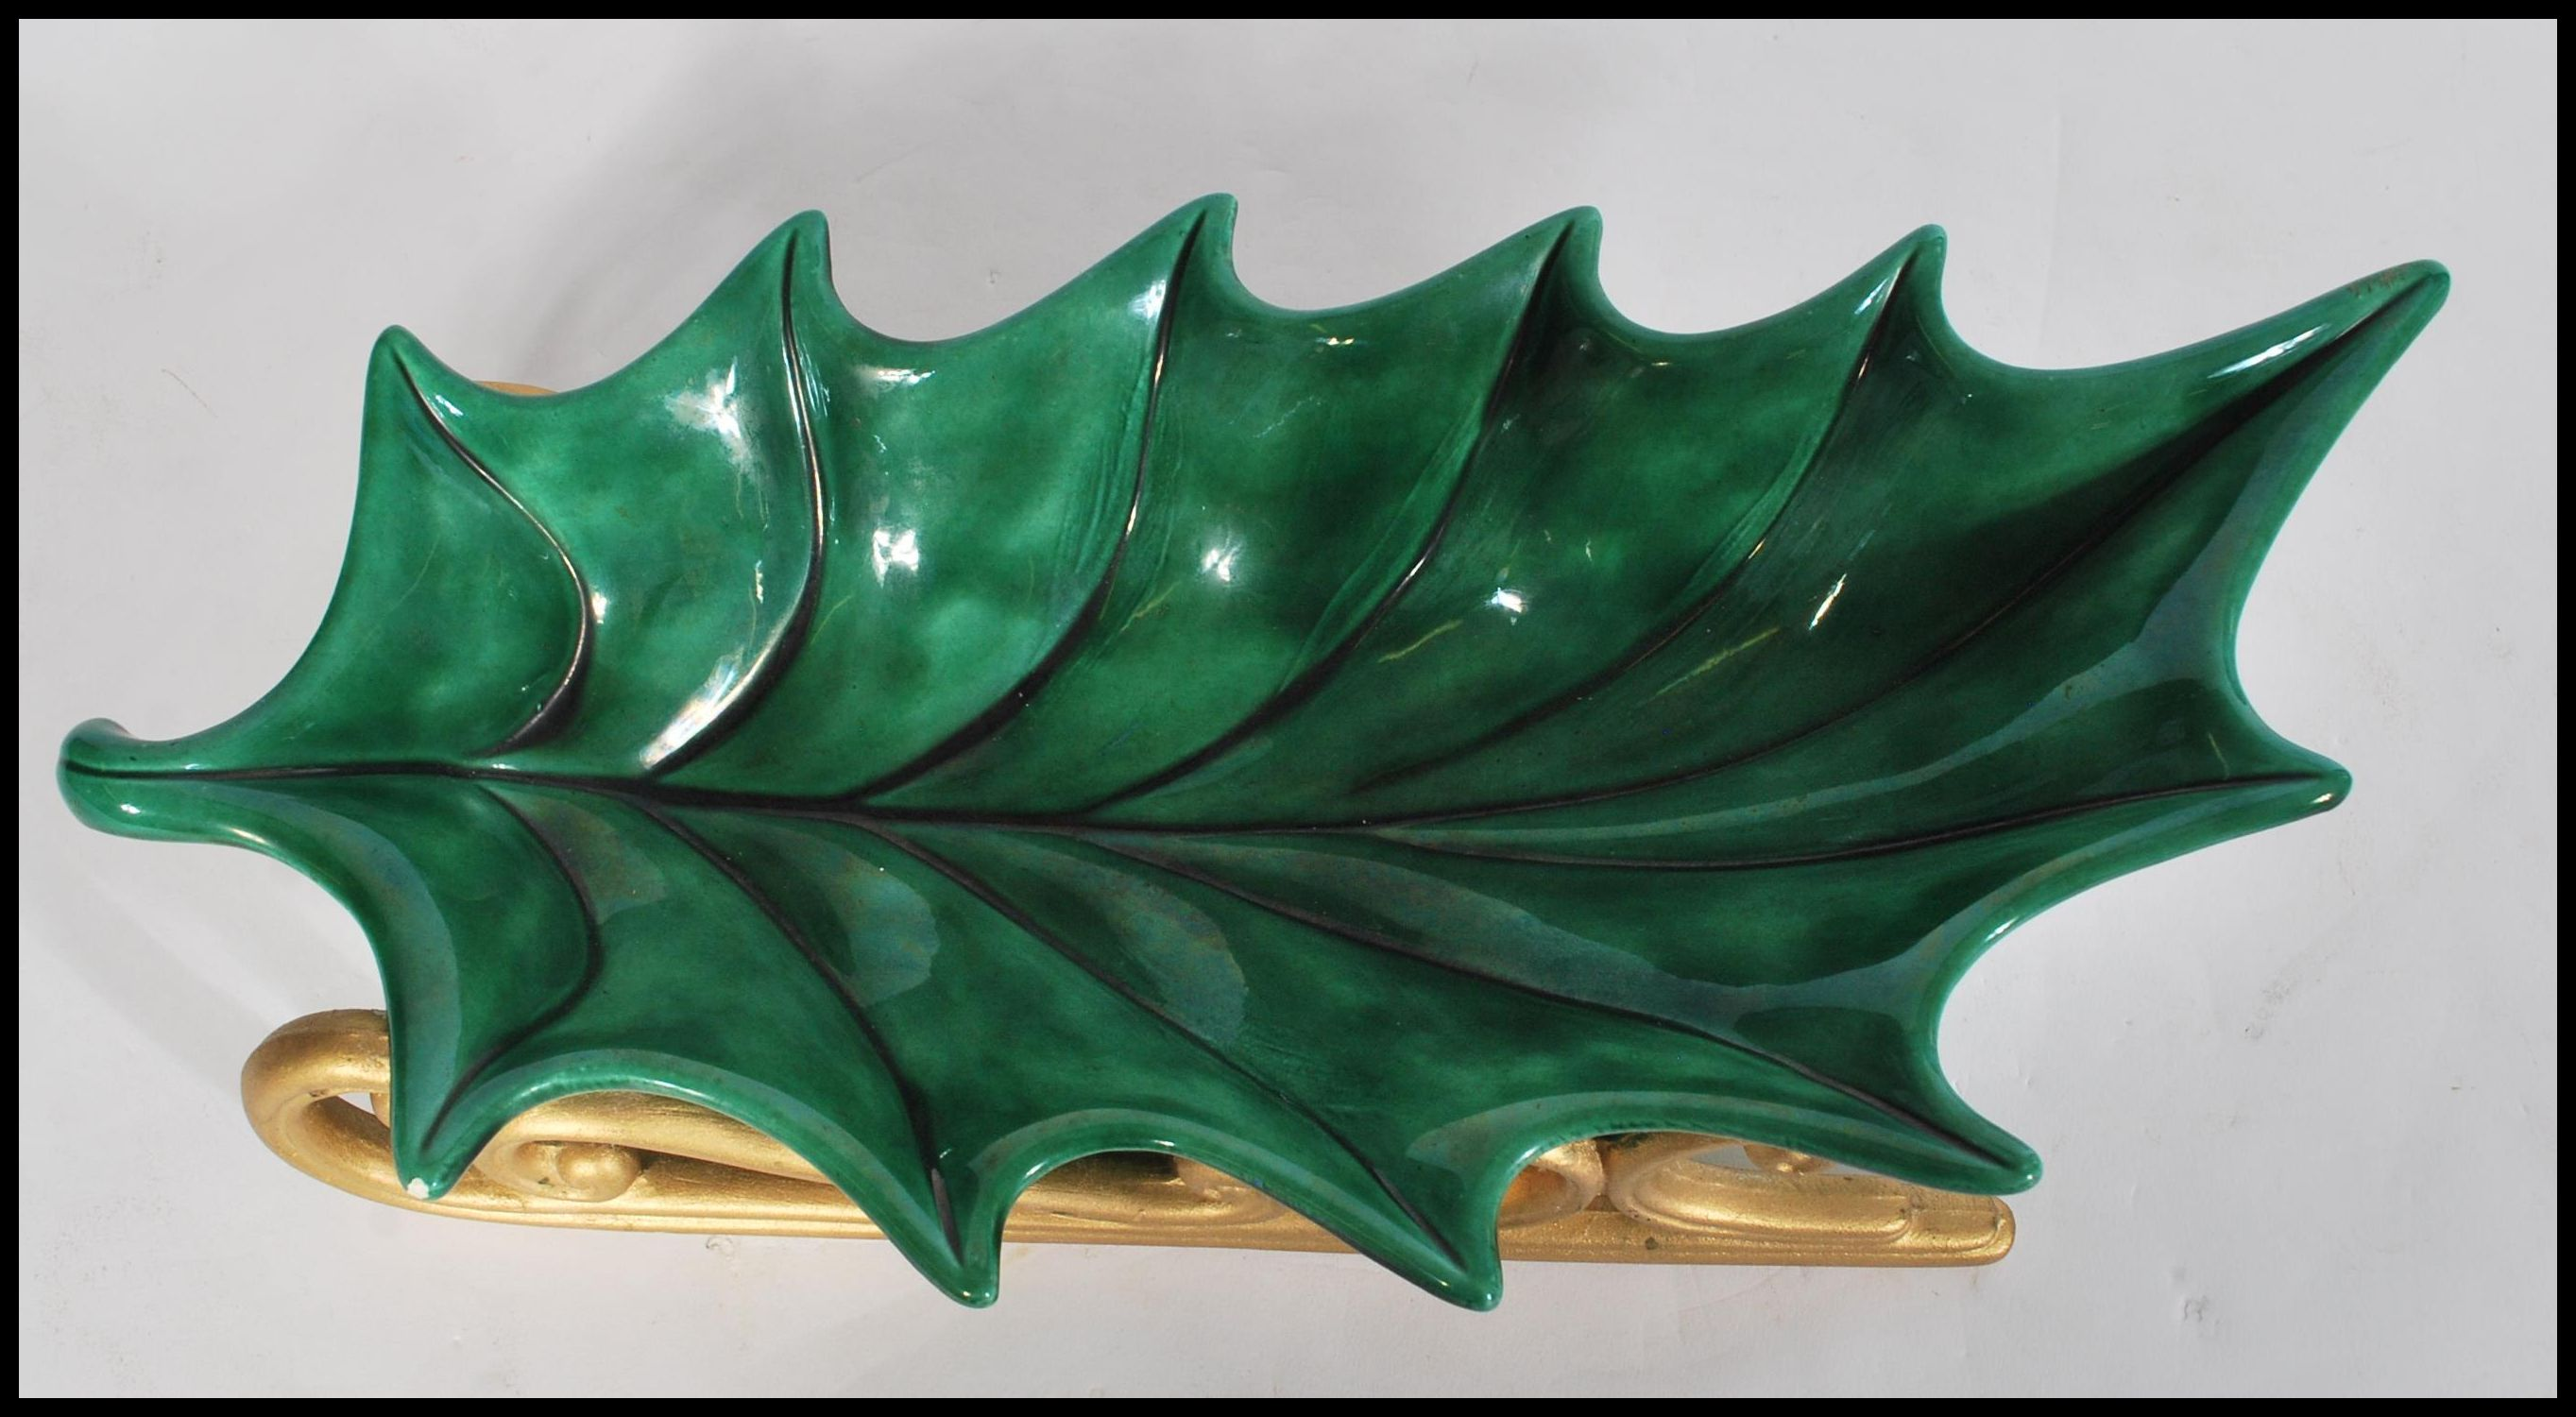 Lot 53 - A vintage 20th century ceramic Christmas decoration in the form of a large holly leaf raised on gilt